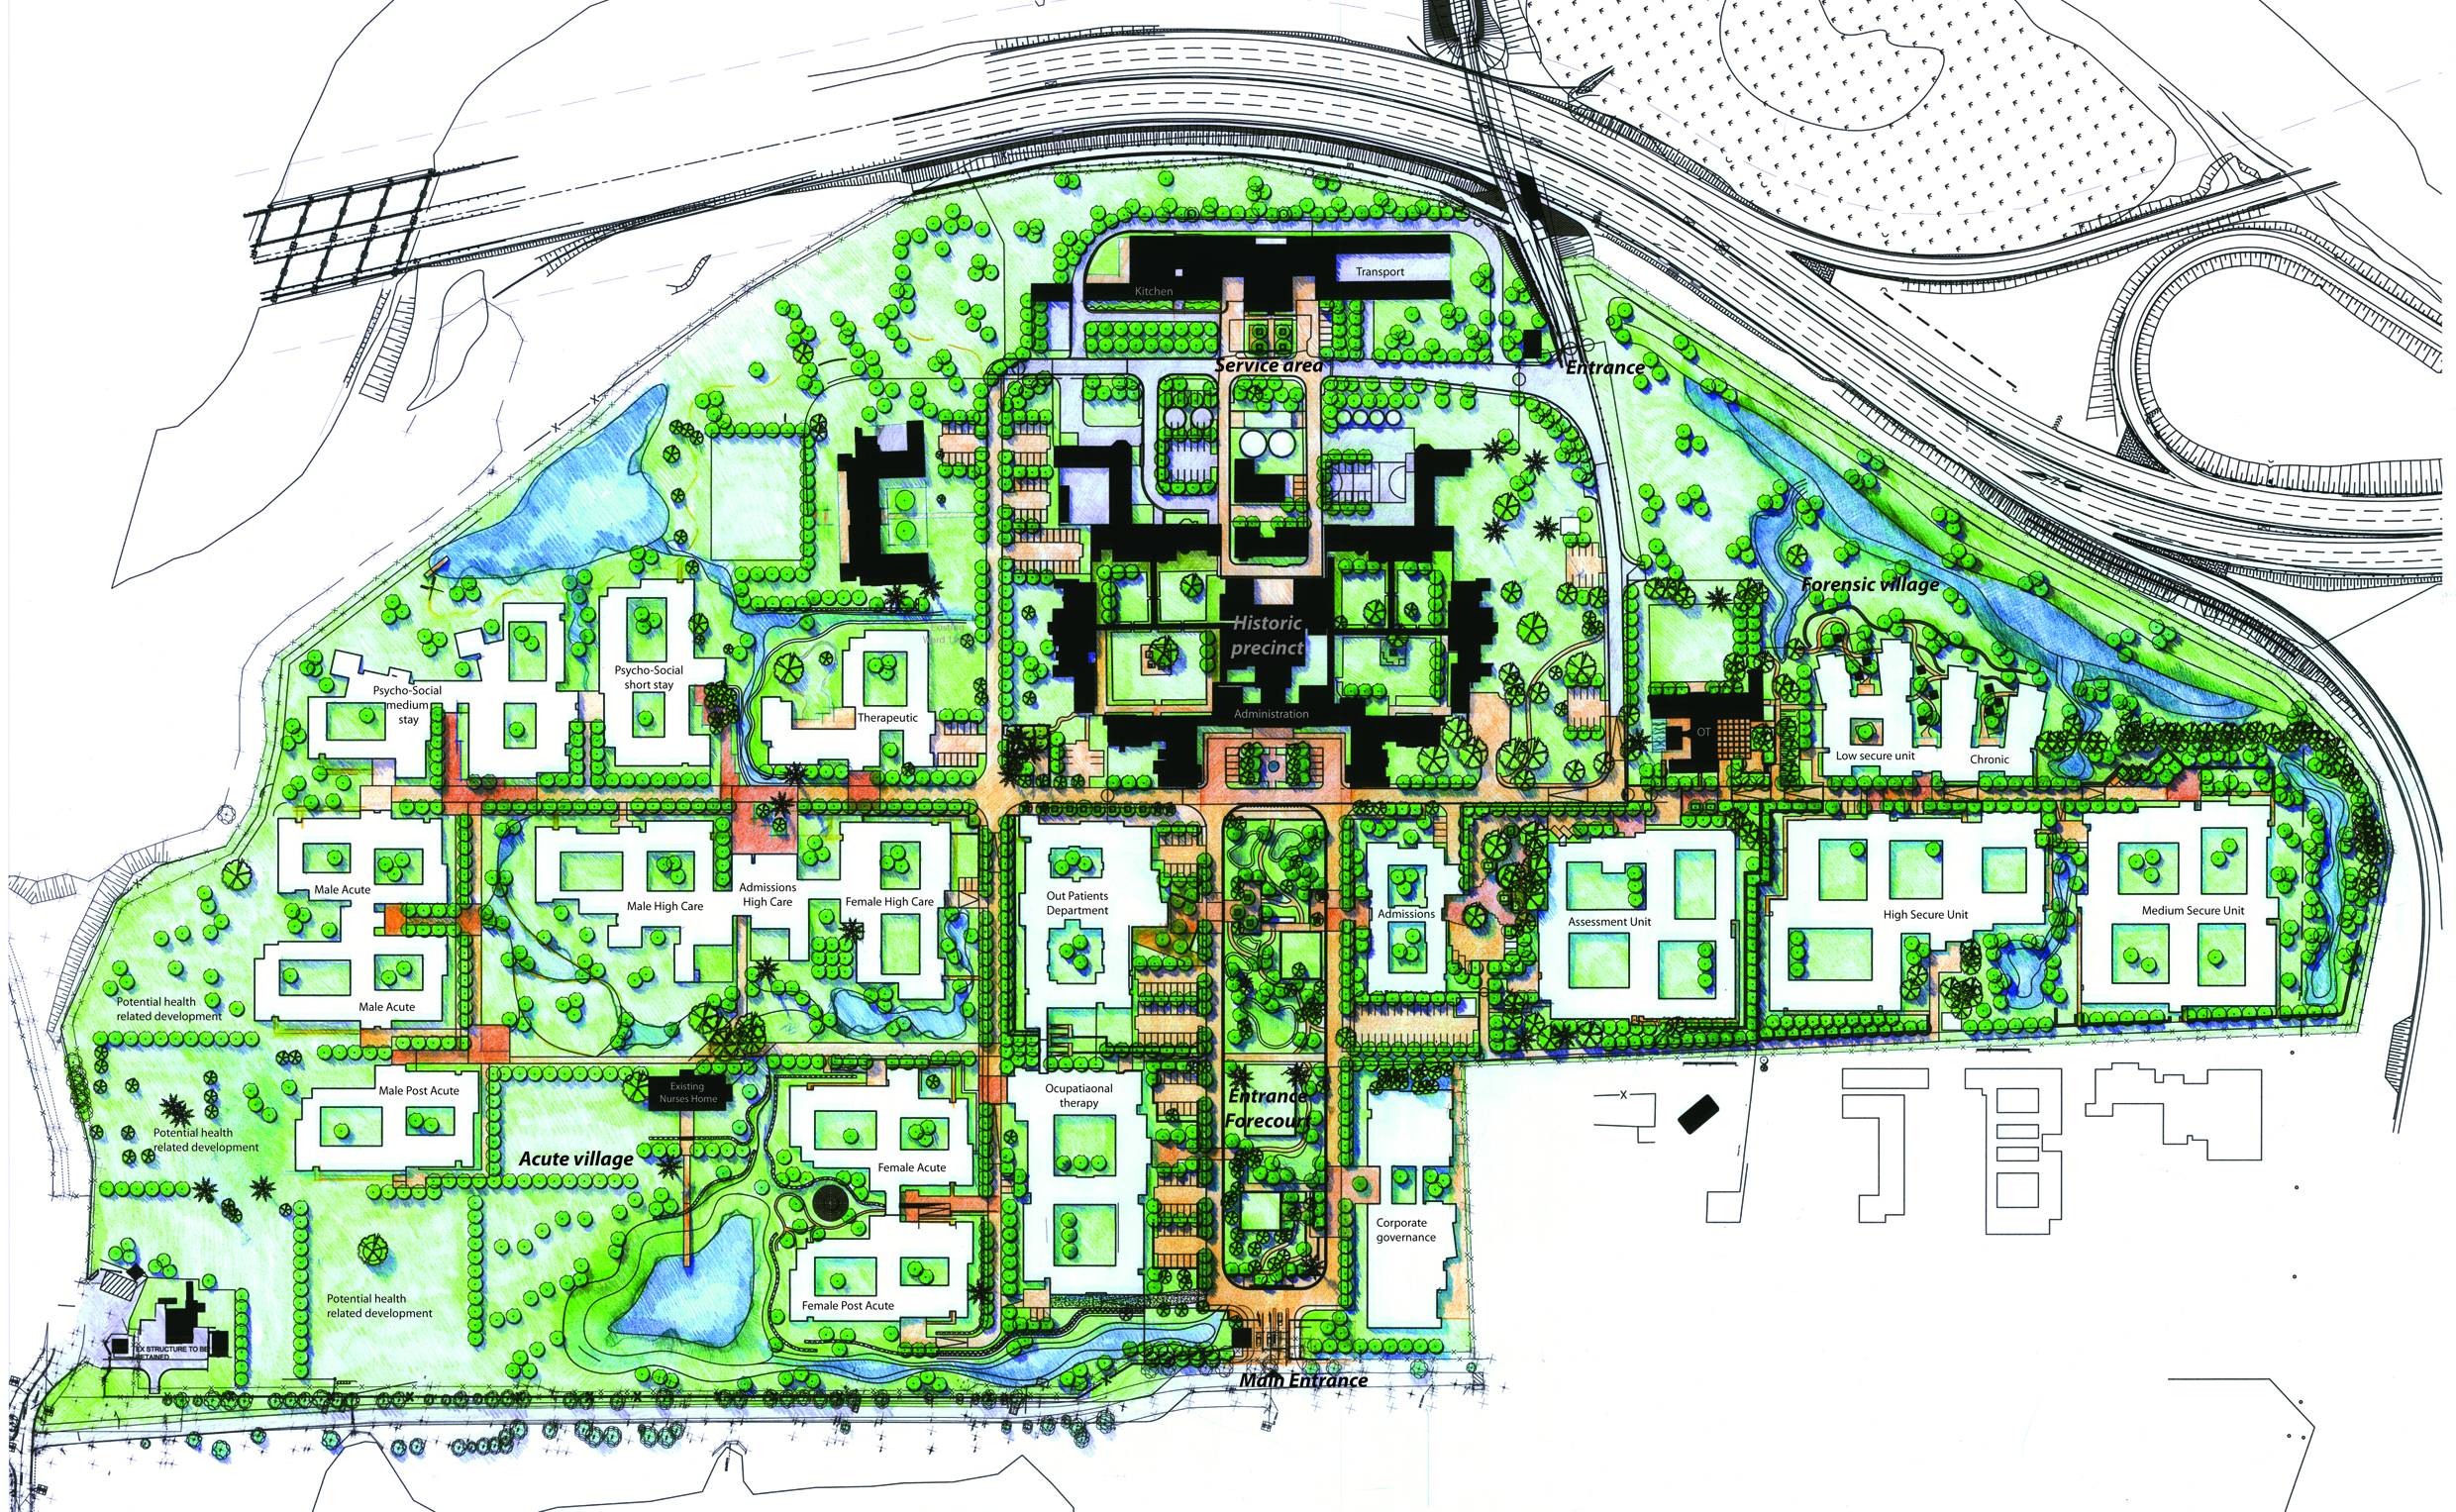 2014_11_05 labbeled overall siteplan A3 .jpg